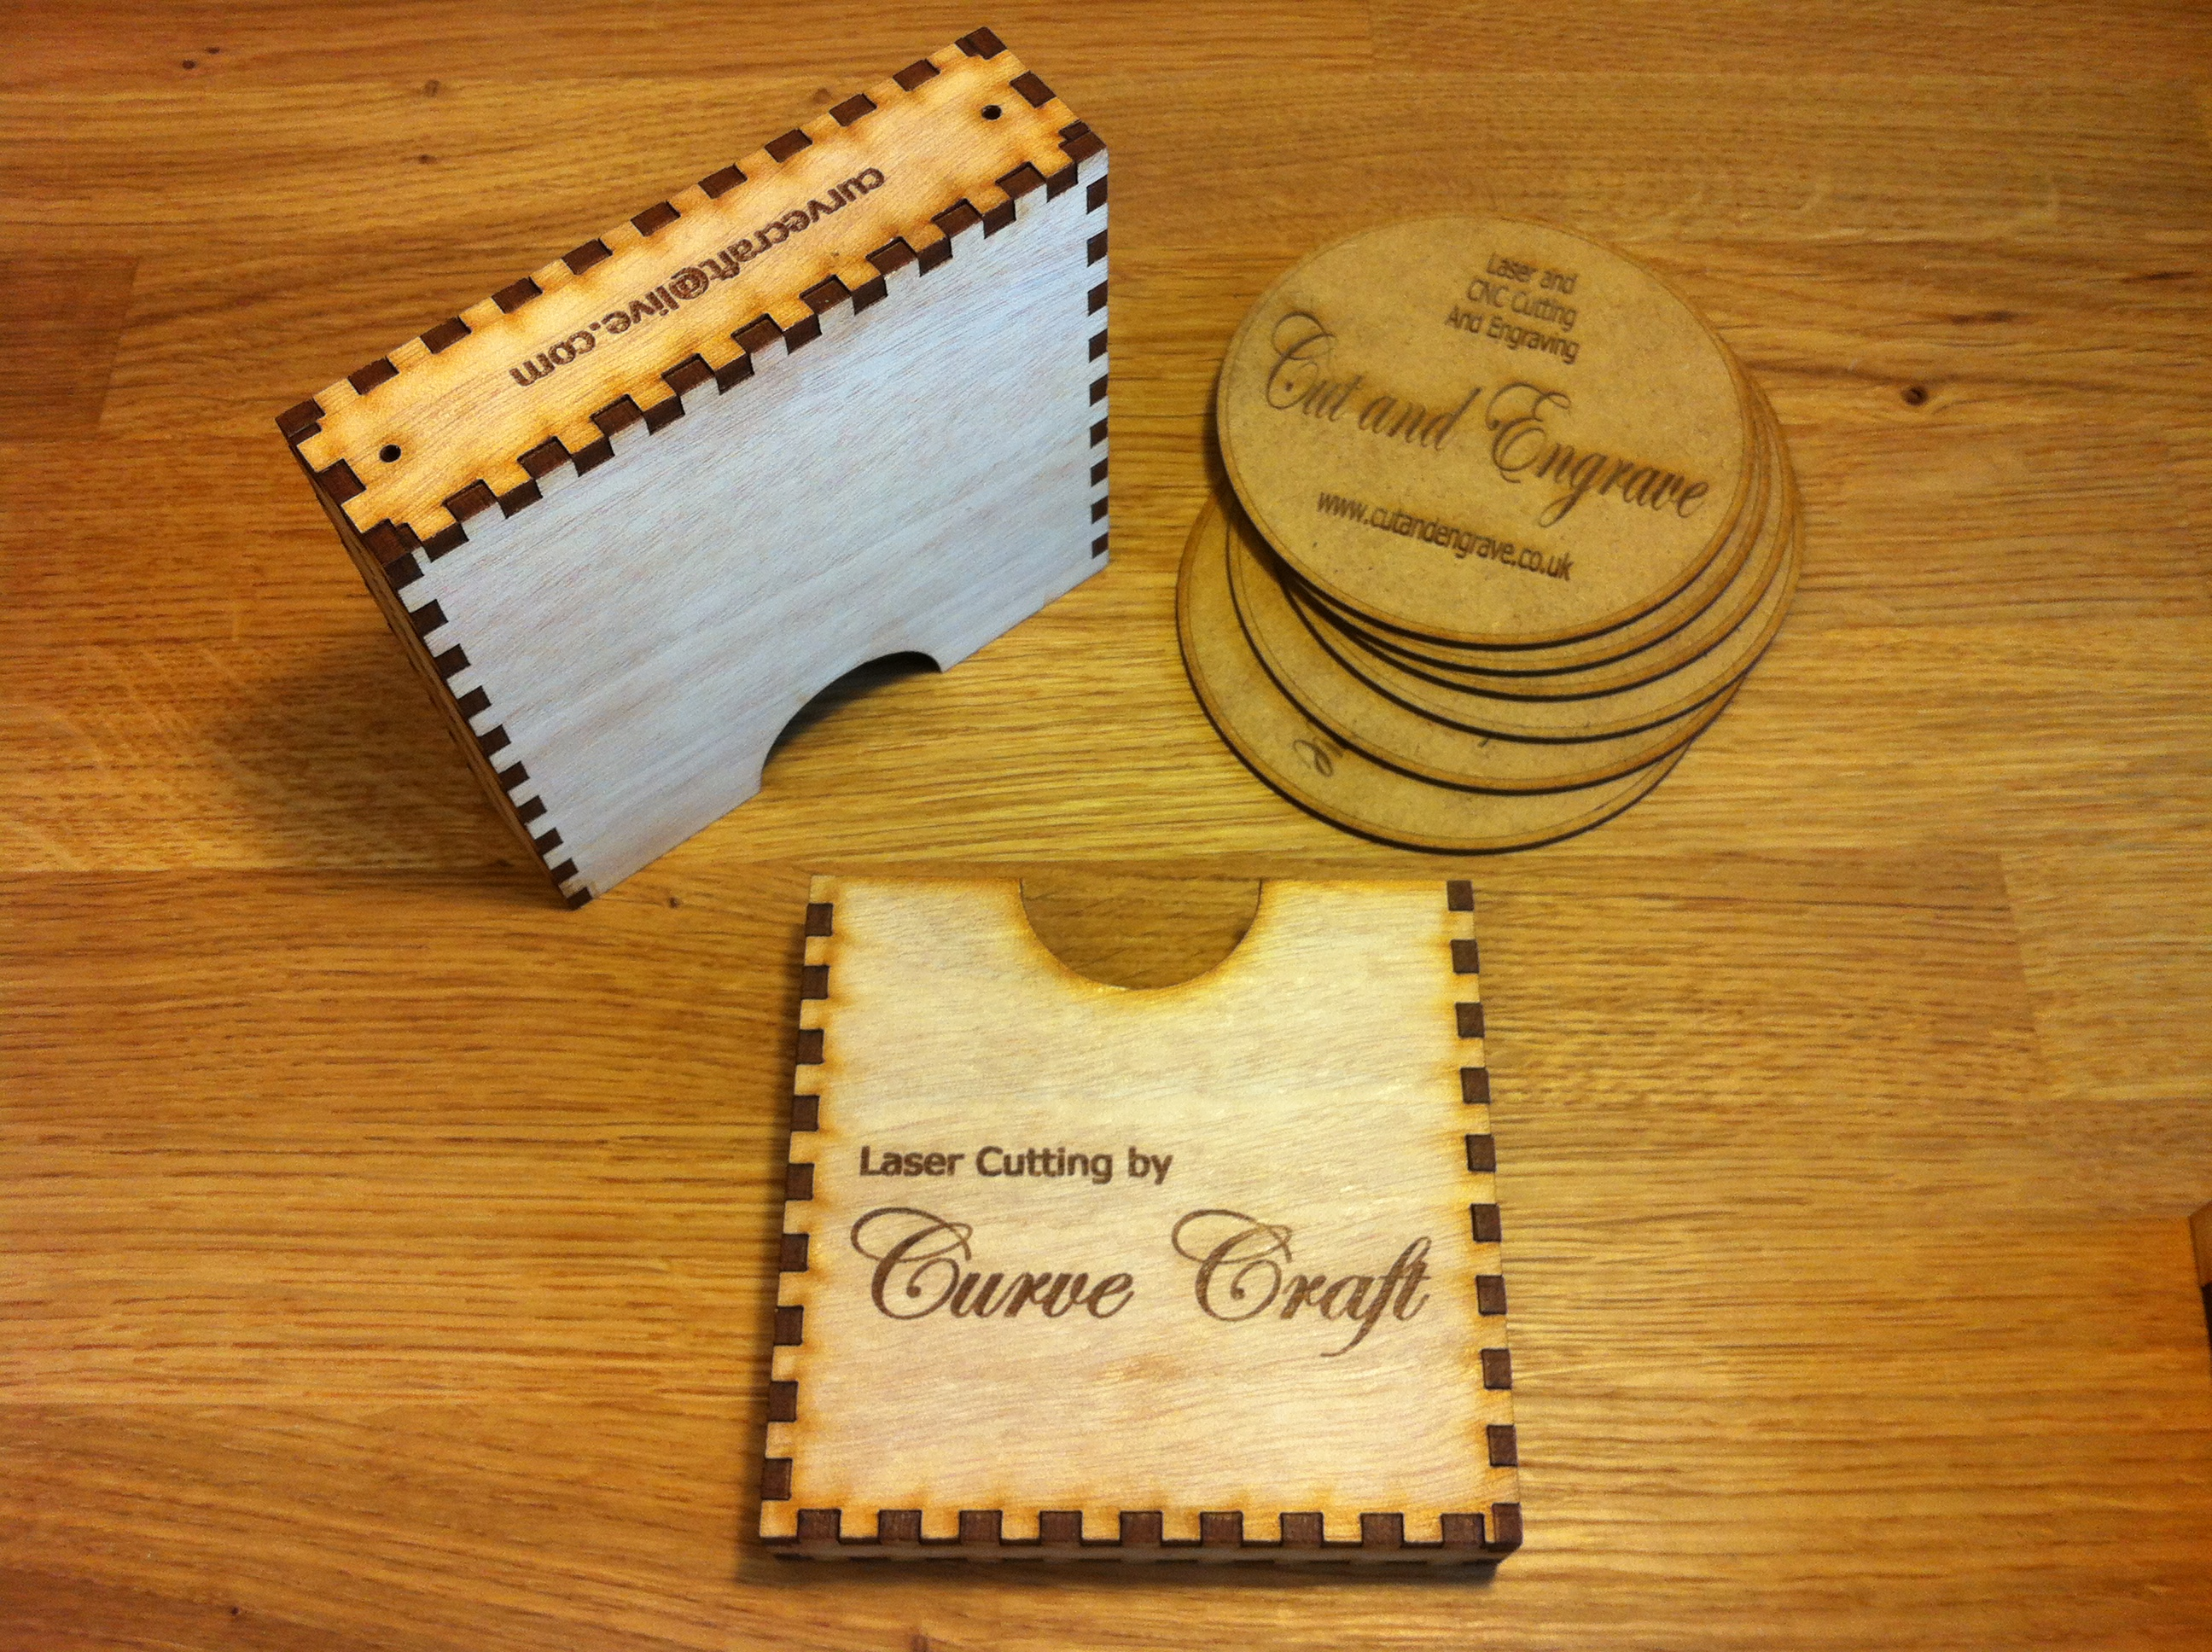 Laser Cutting and Engraving